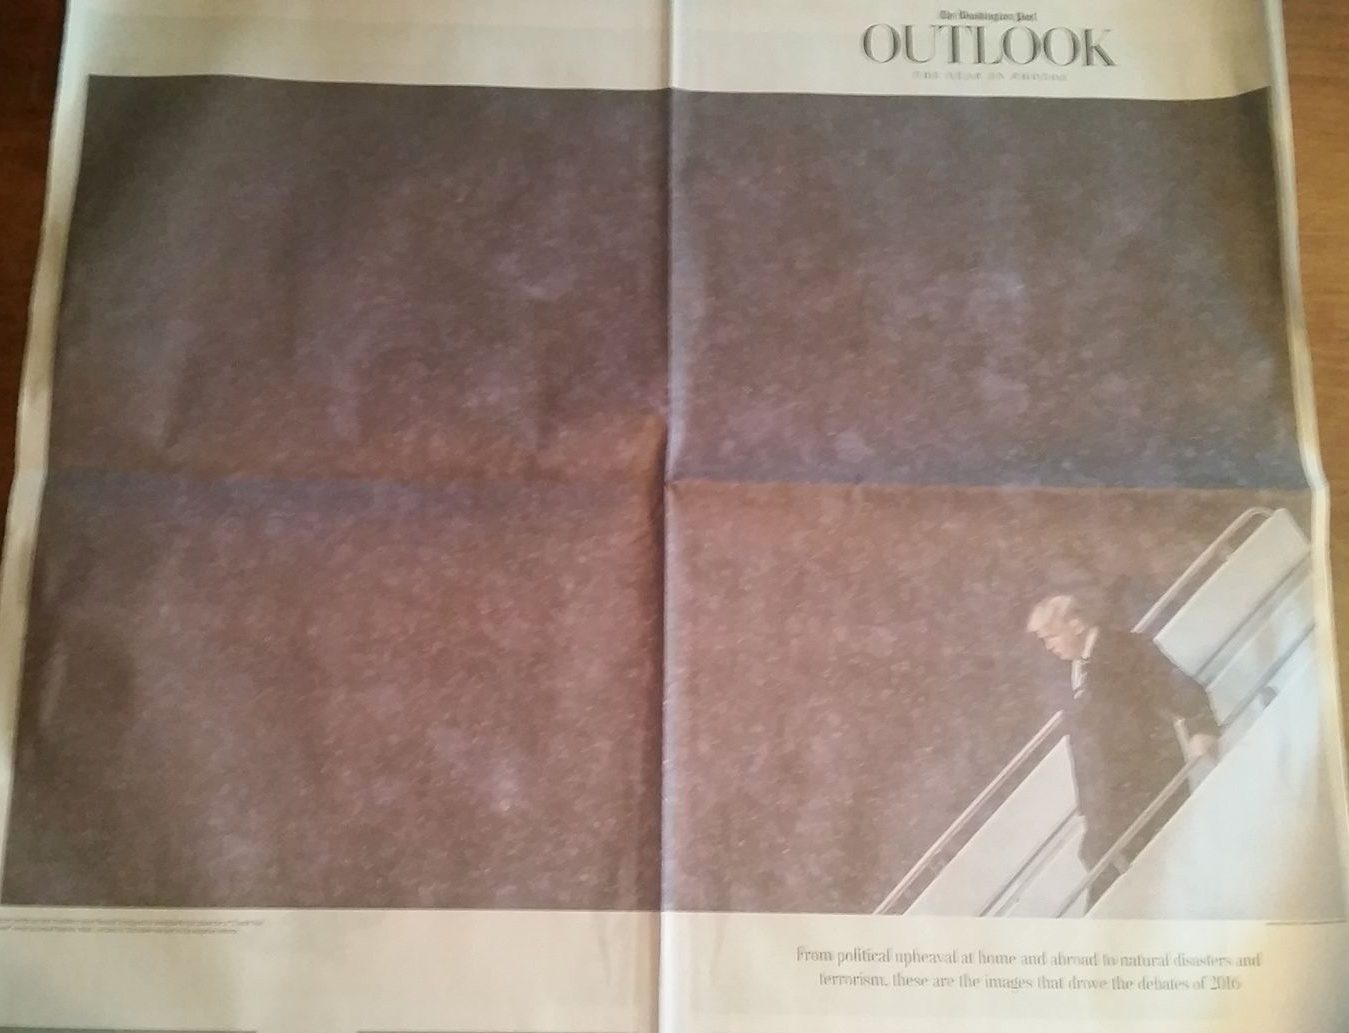 Washington Post Outlook section, dated 1/20/2017. Trump appears below the fold in an image that covers the front and back of the Outlook section. Trump is leaving Air Force One on the jetway stairs..